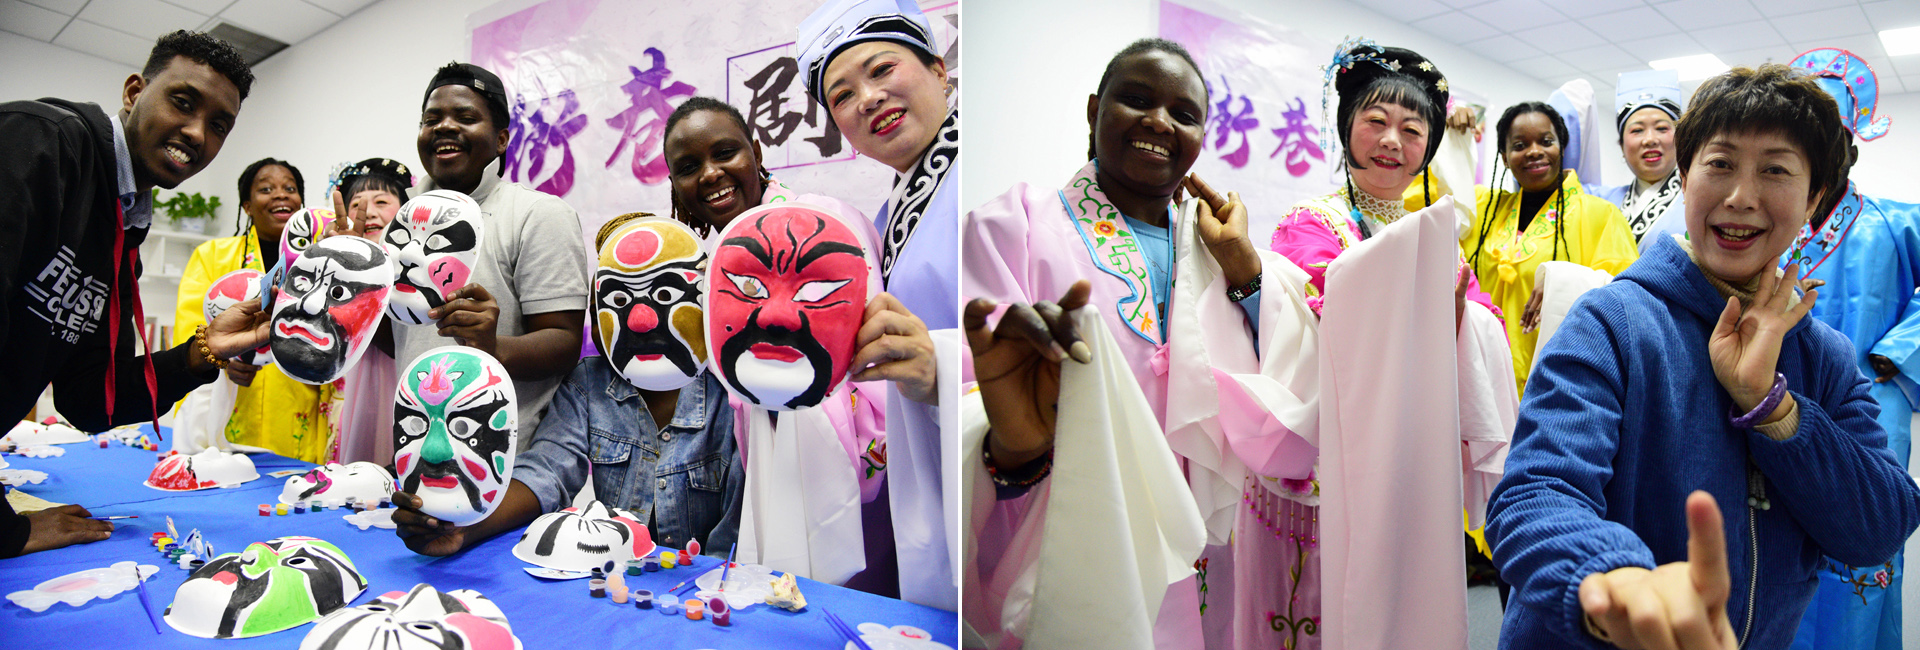 Intl students in Zhenjiang observe World Theater Day